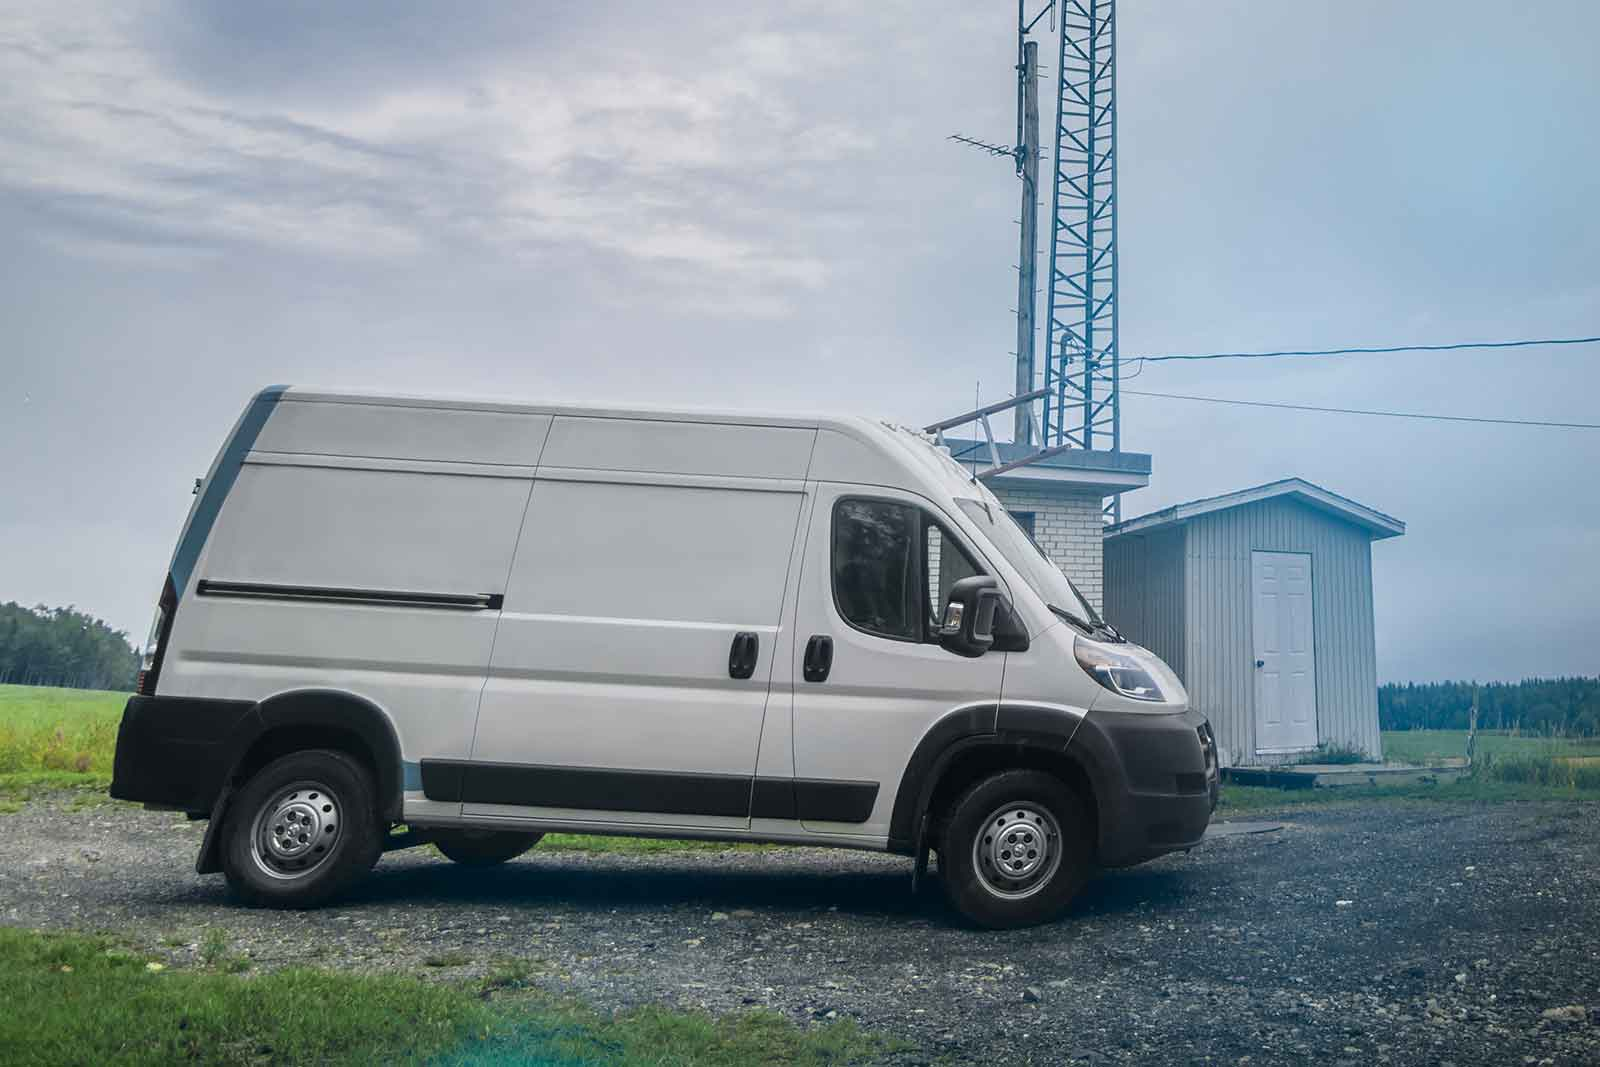 White work van on unpaved road in front of small building and power tower